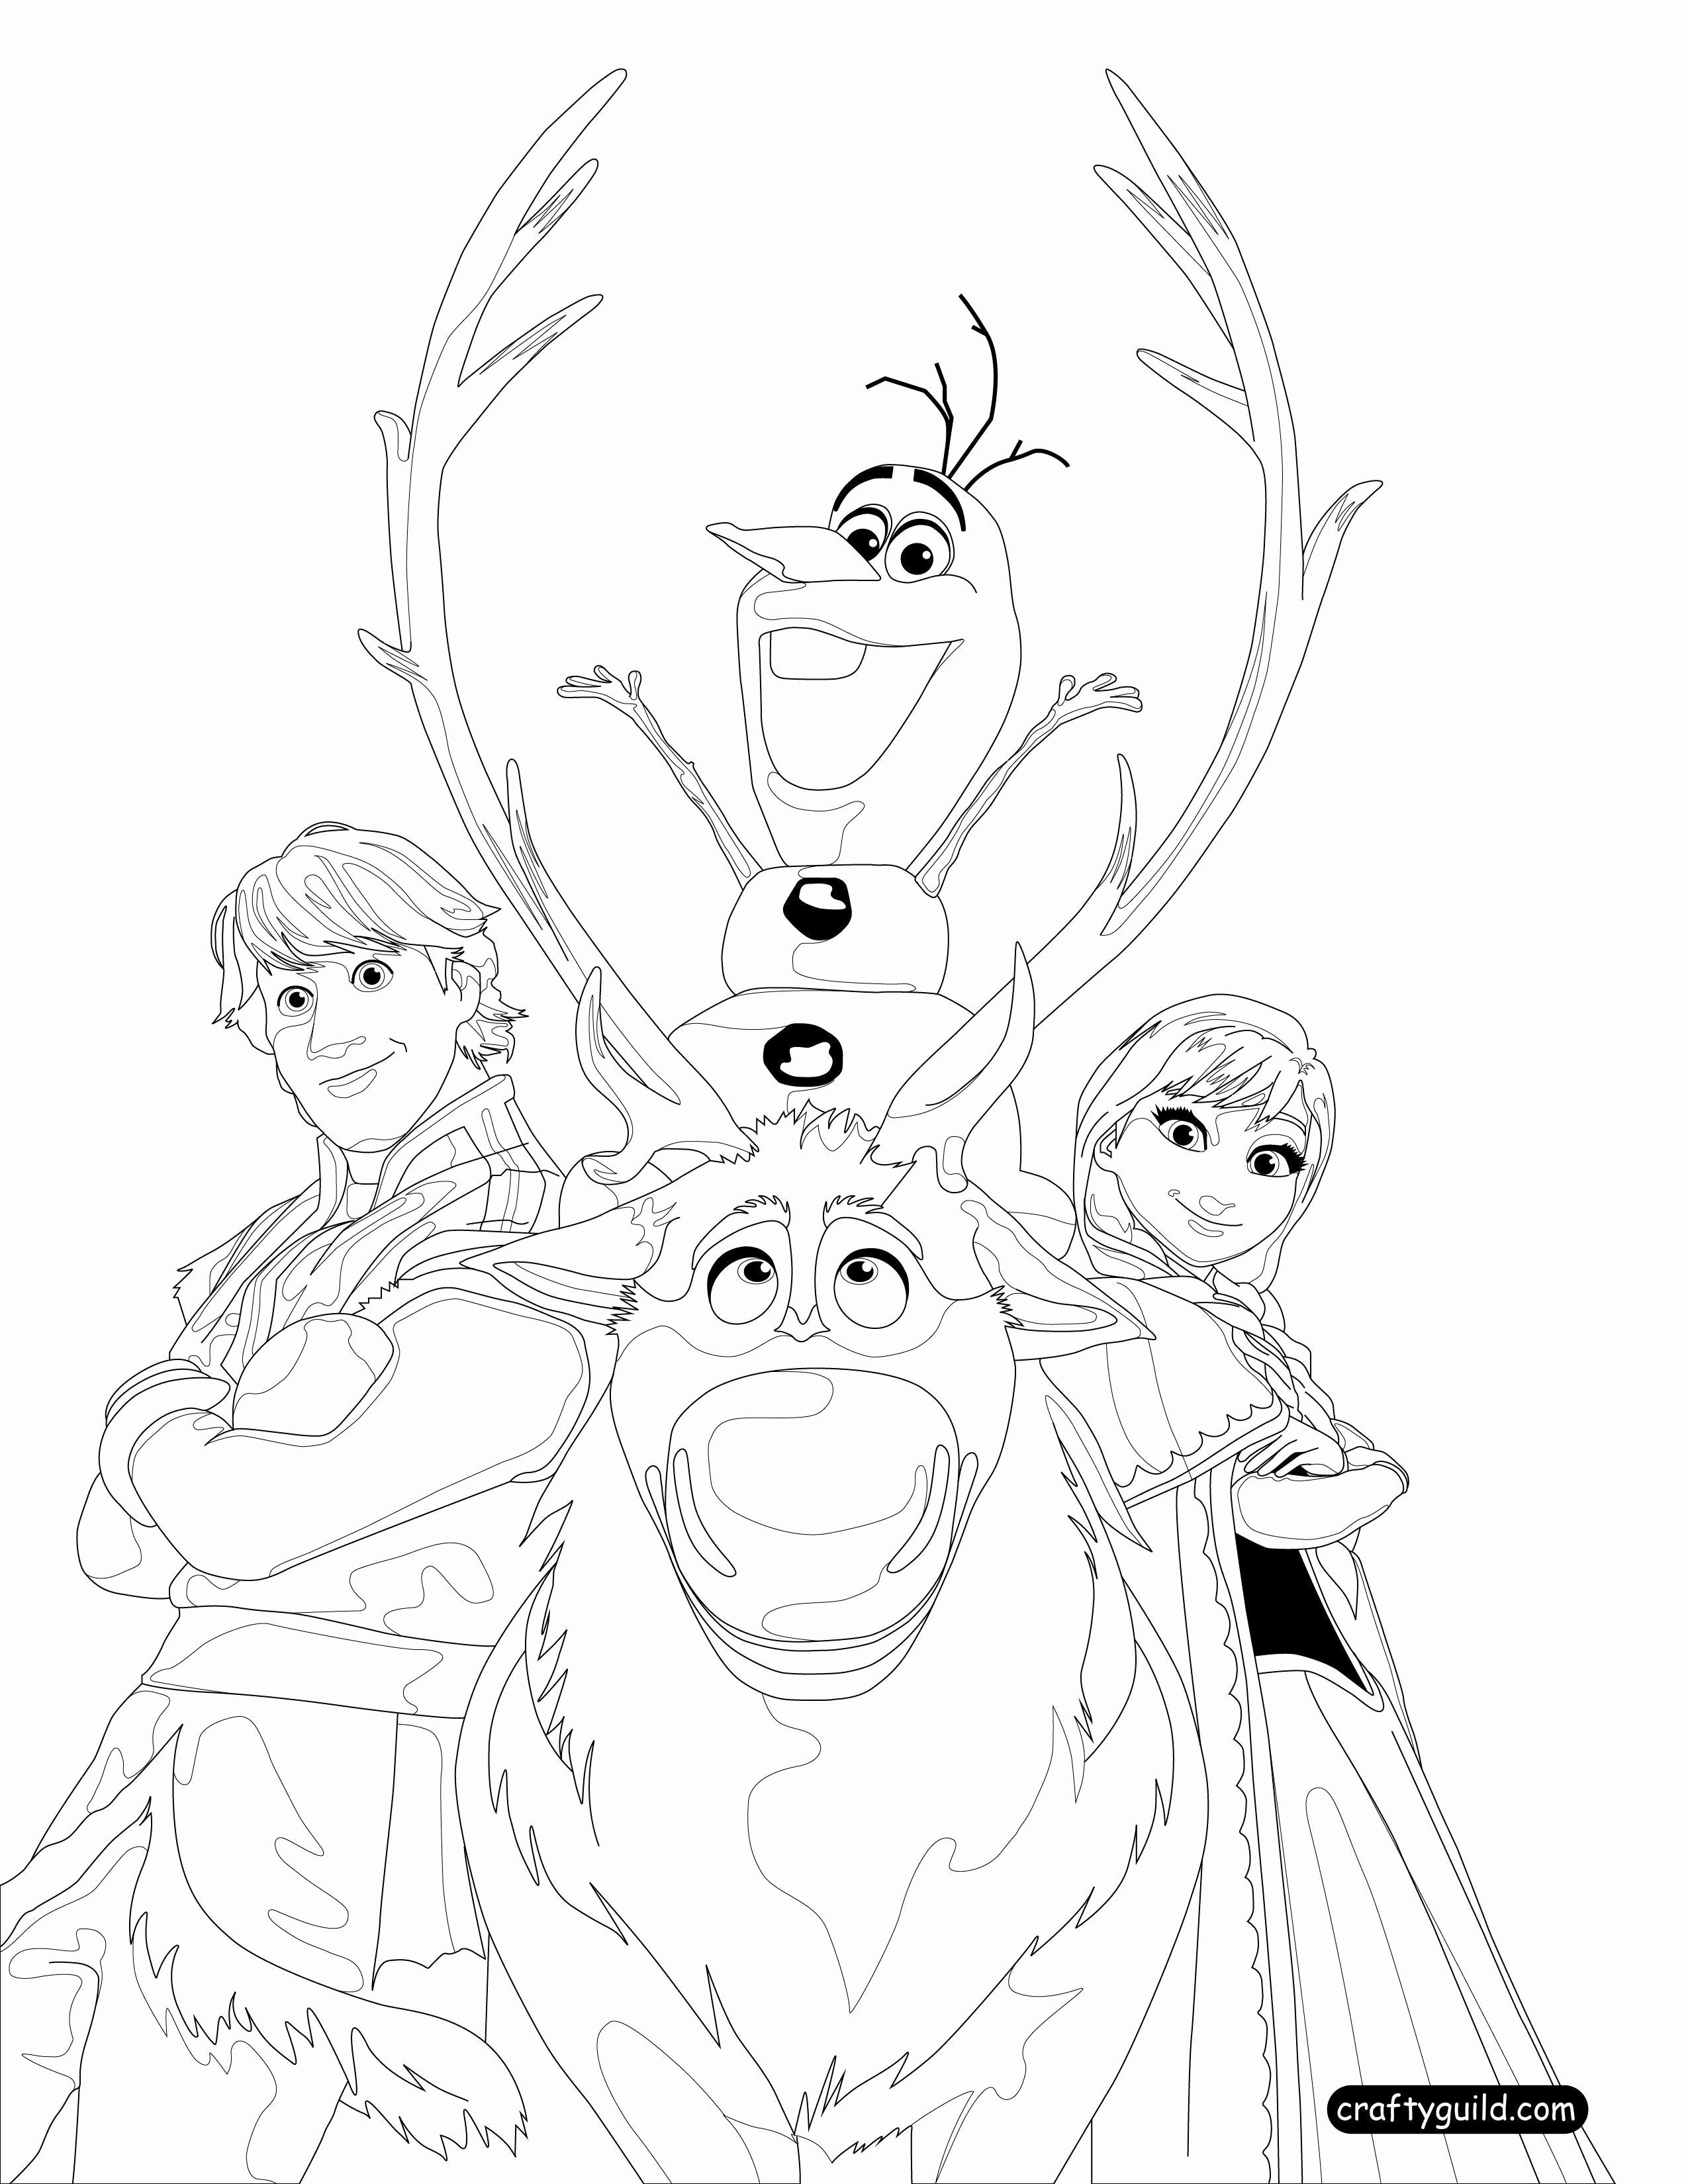 Disney On Ice Coloring Pages In 2020 Frozen Coloring Pages